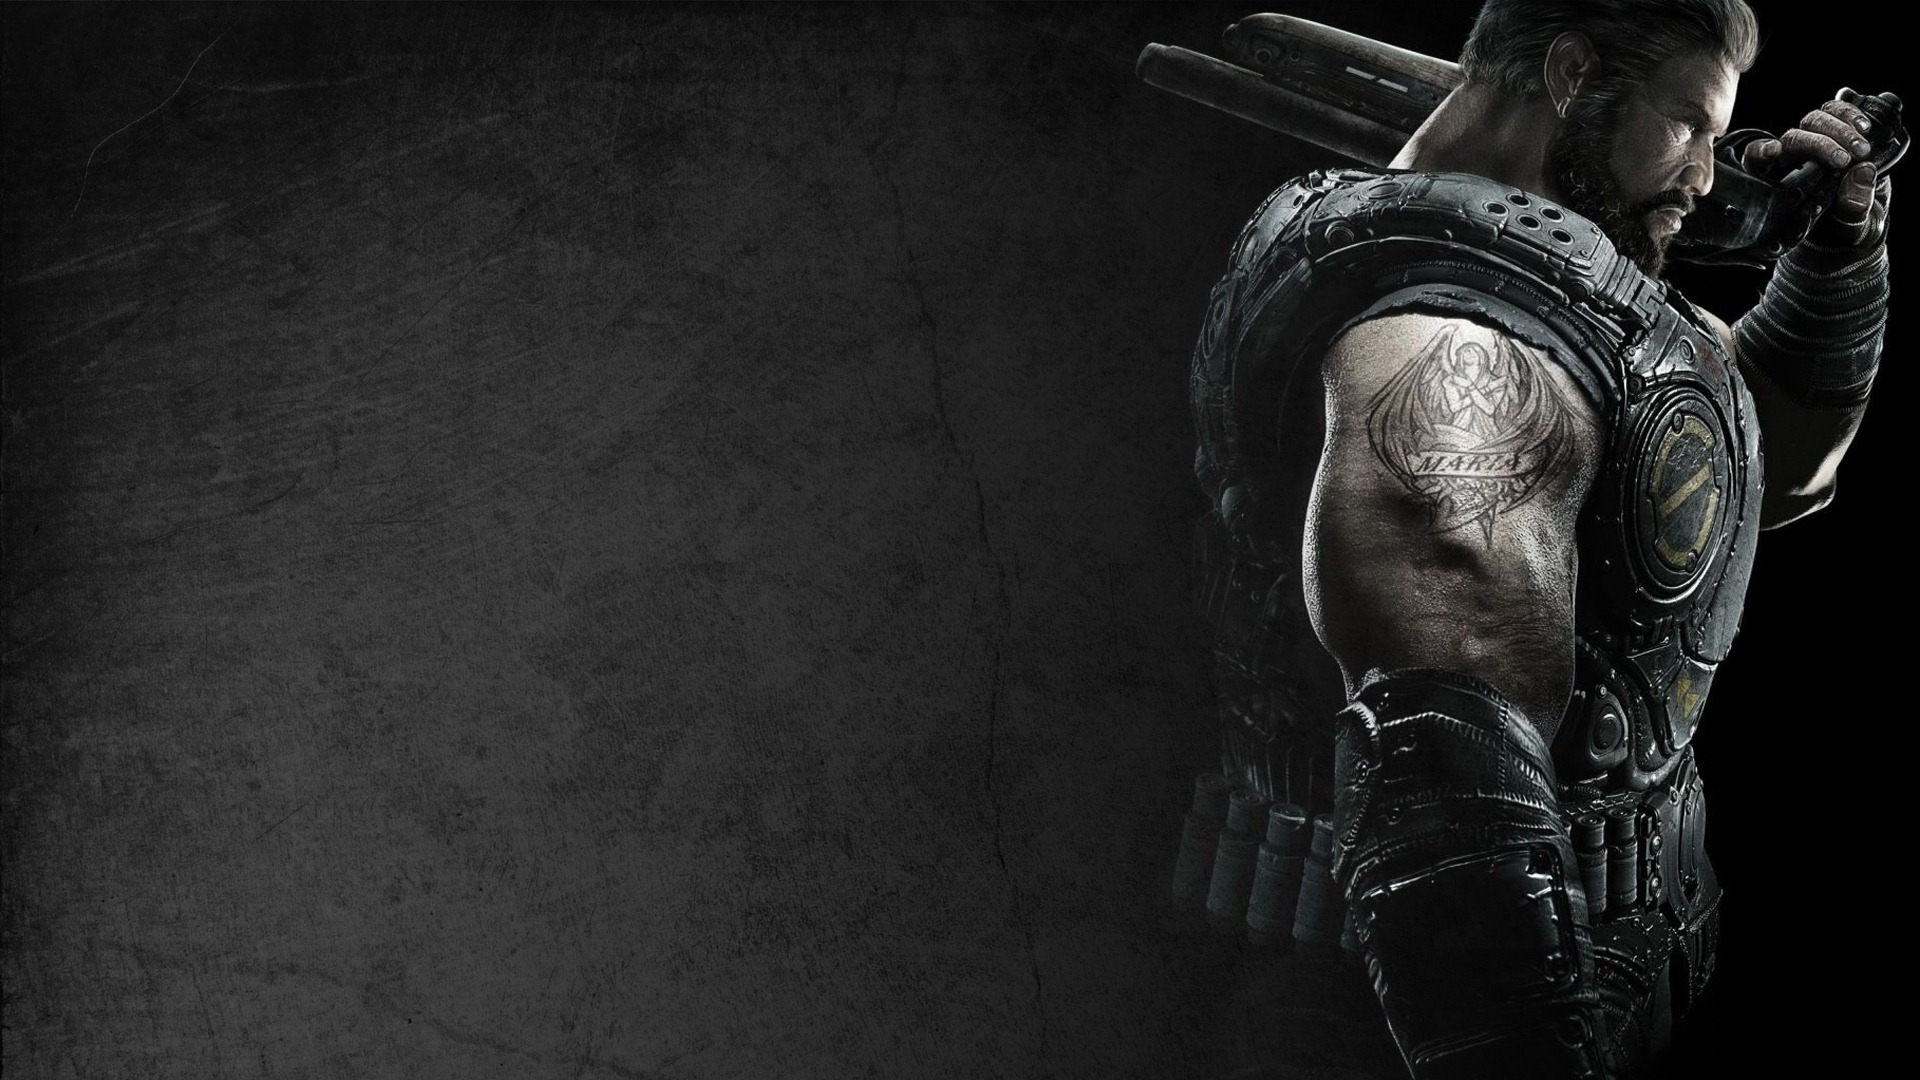 Download Wallpaper 1920x1080 Gears Of War, Soldier, Tattoo